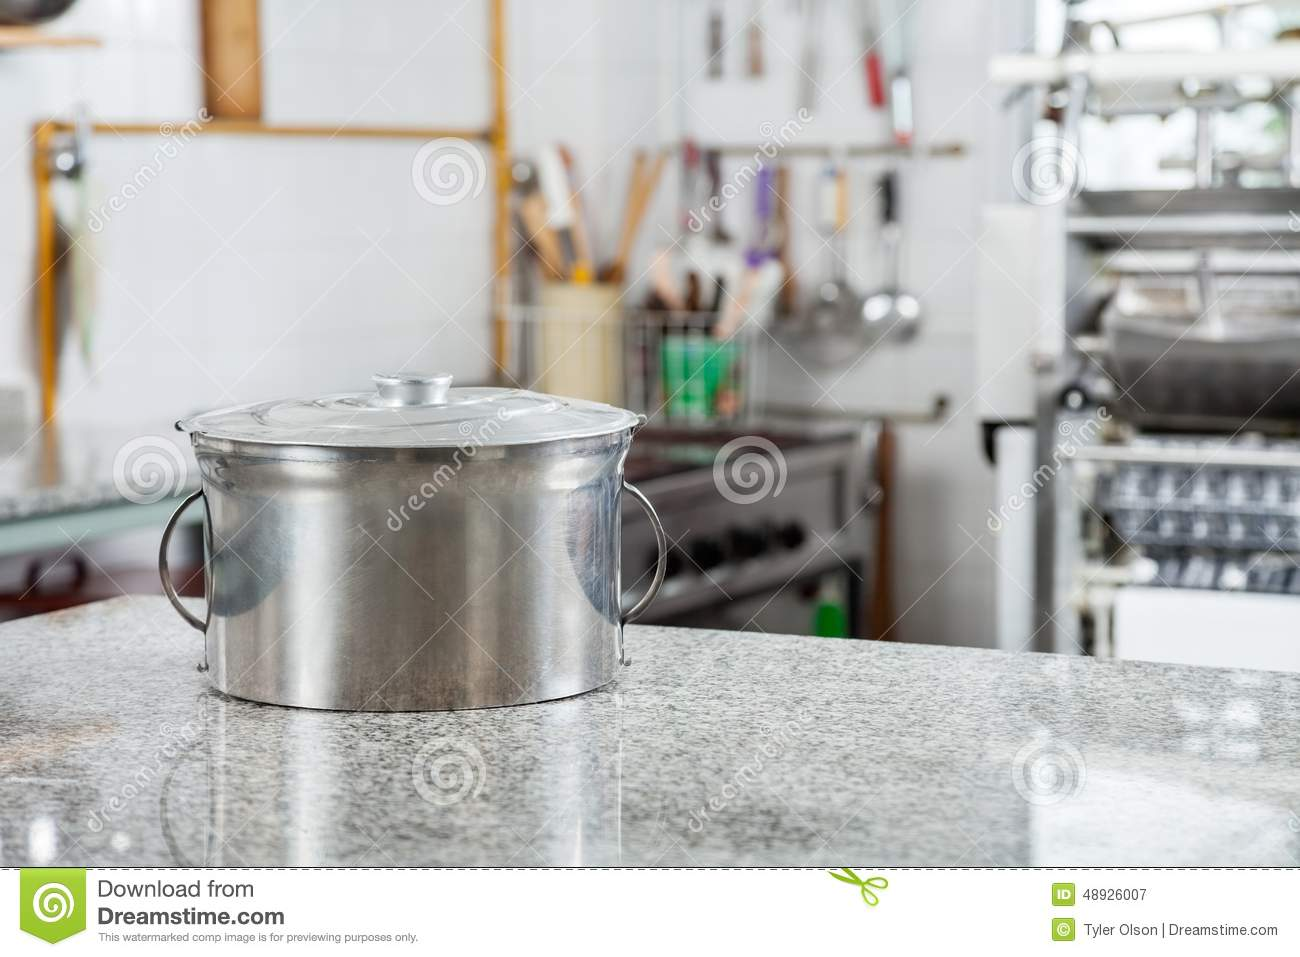 Pasta Pot On Countertop In Commercial Kitchen Stock Photo - Image ...